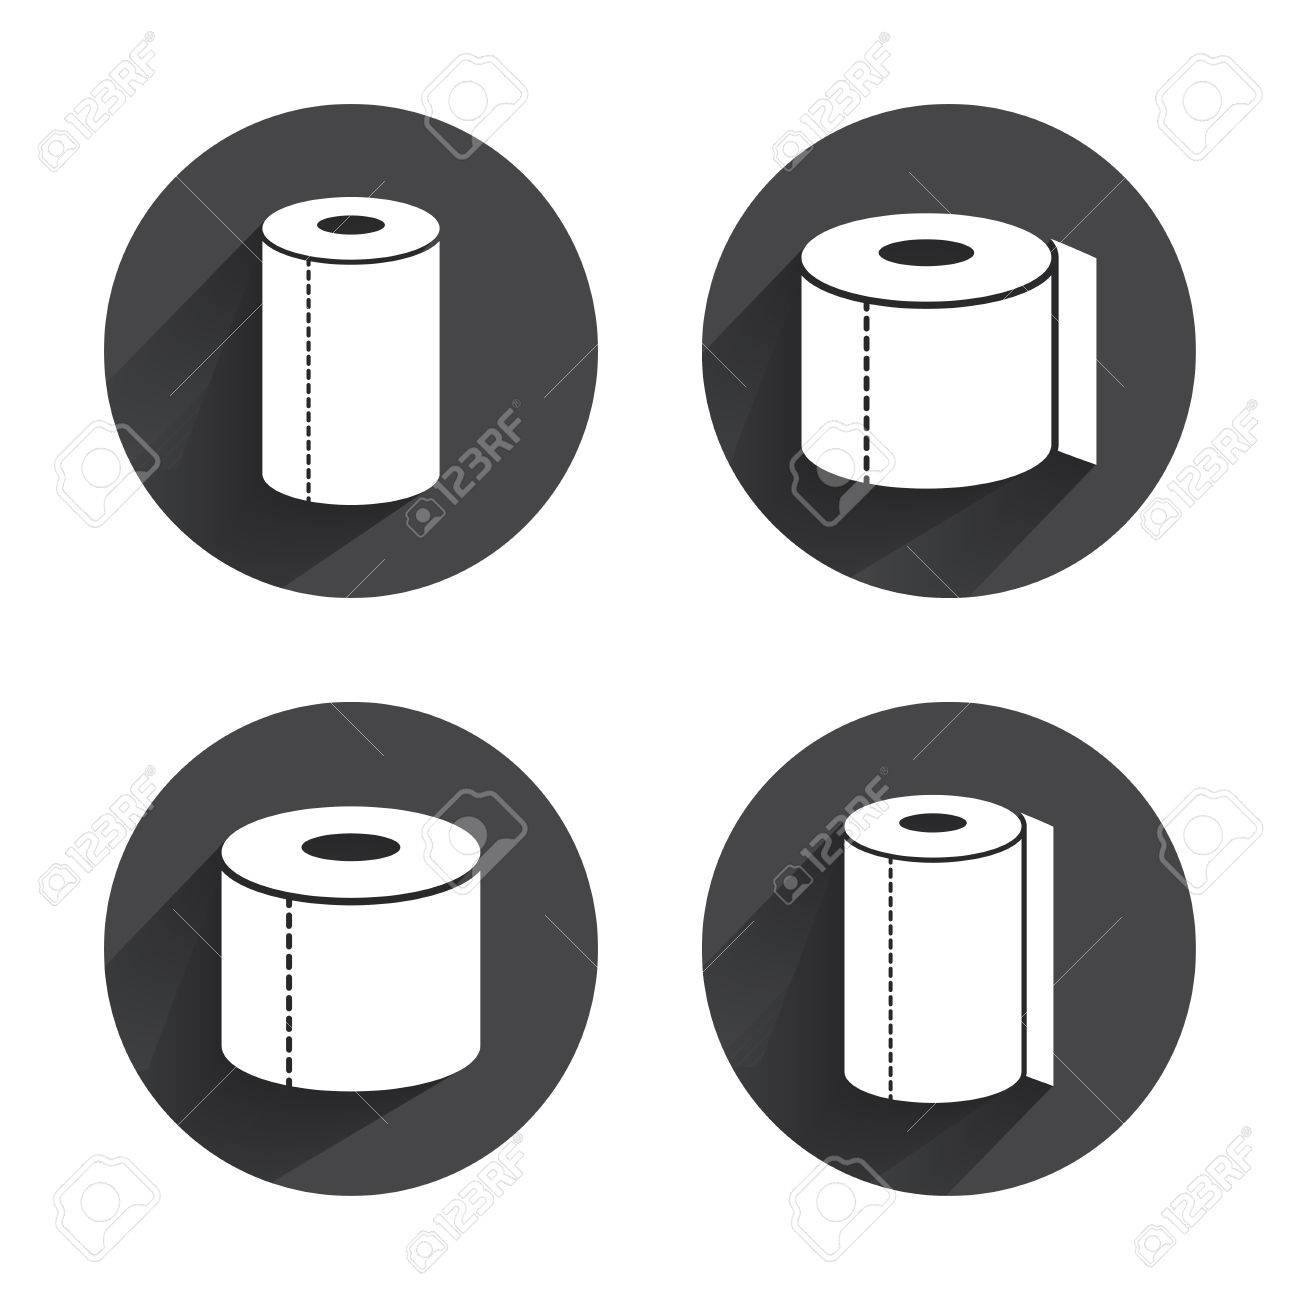 Toilet paper icons kitchen roll towel symbols wc paper signs kitchen roll towel symbols wc paper signs circles buttons with buycottarizona Choice Image